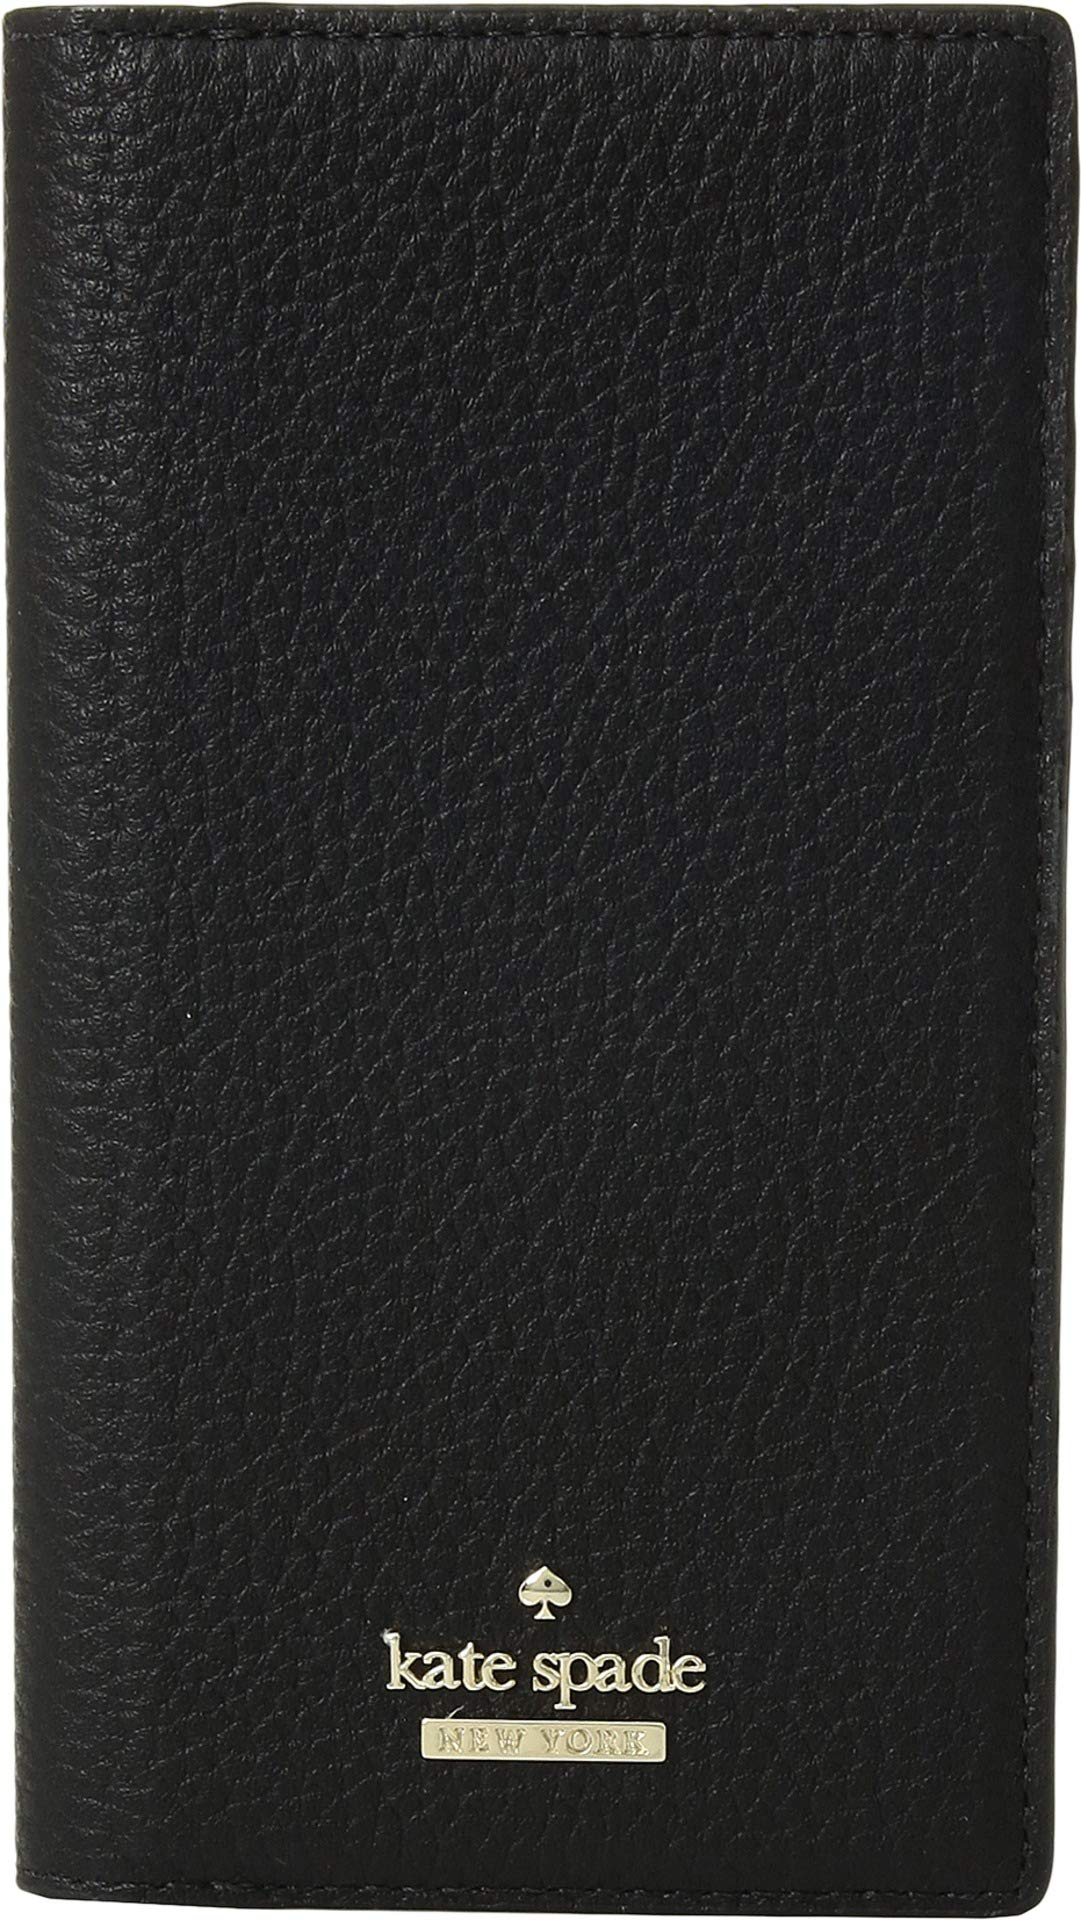 Kate Spade New York Women's Pebbled Folio iPhone Case for iPhone X Black One Size